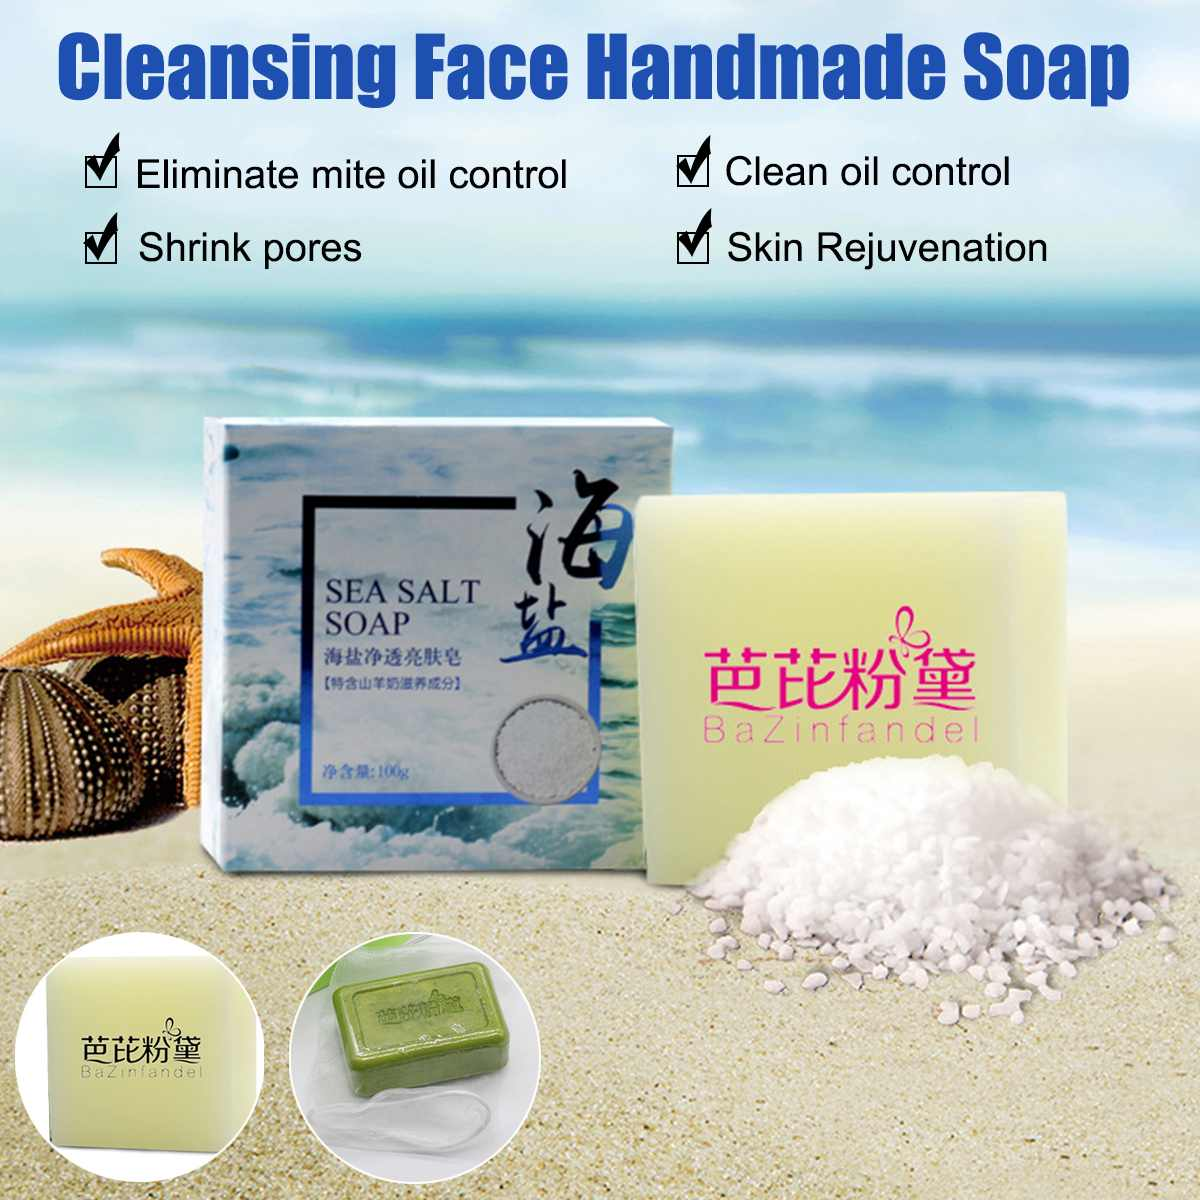 Skin Soap For Remove Mite Sea Salt Handmade Soap Whitening Moisturizing Face Cleansing Soap Remove Acne Cleansing Bath Bar Soap